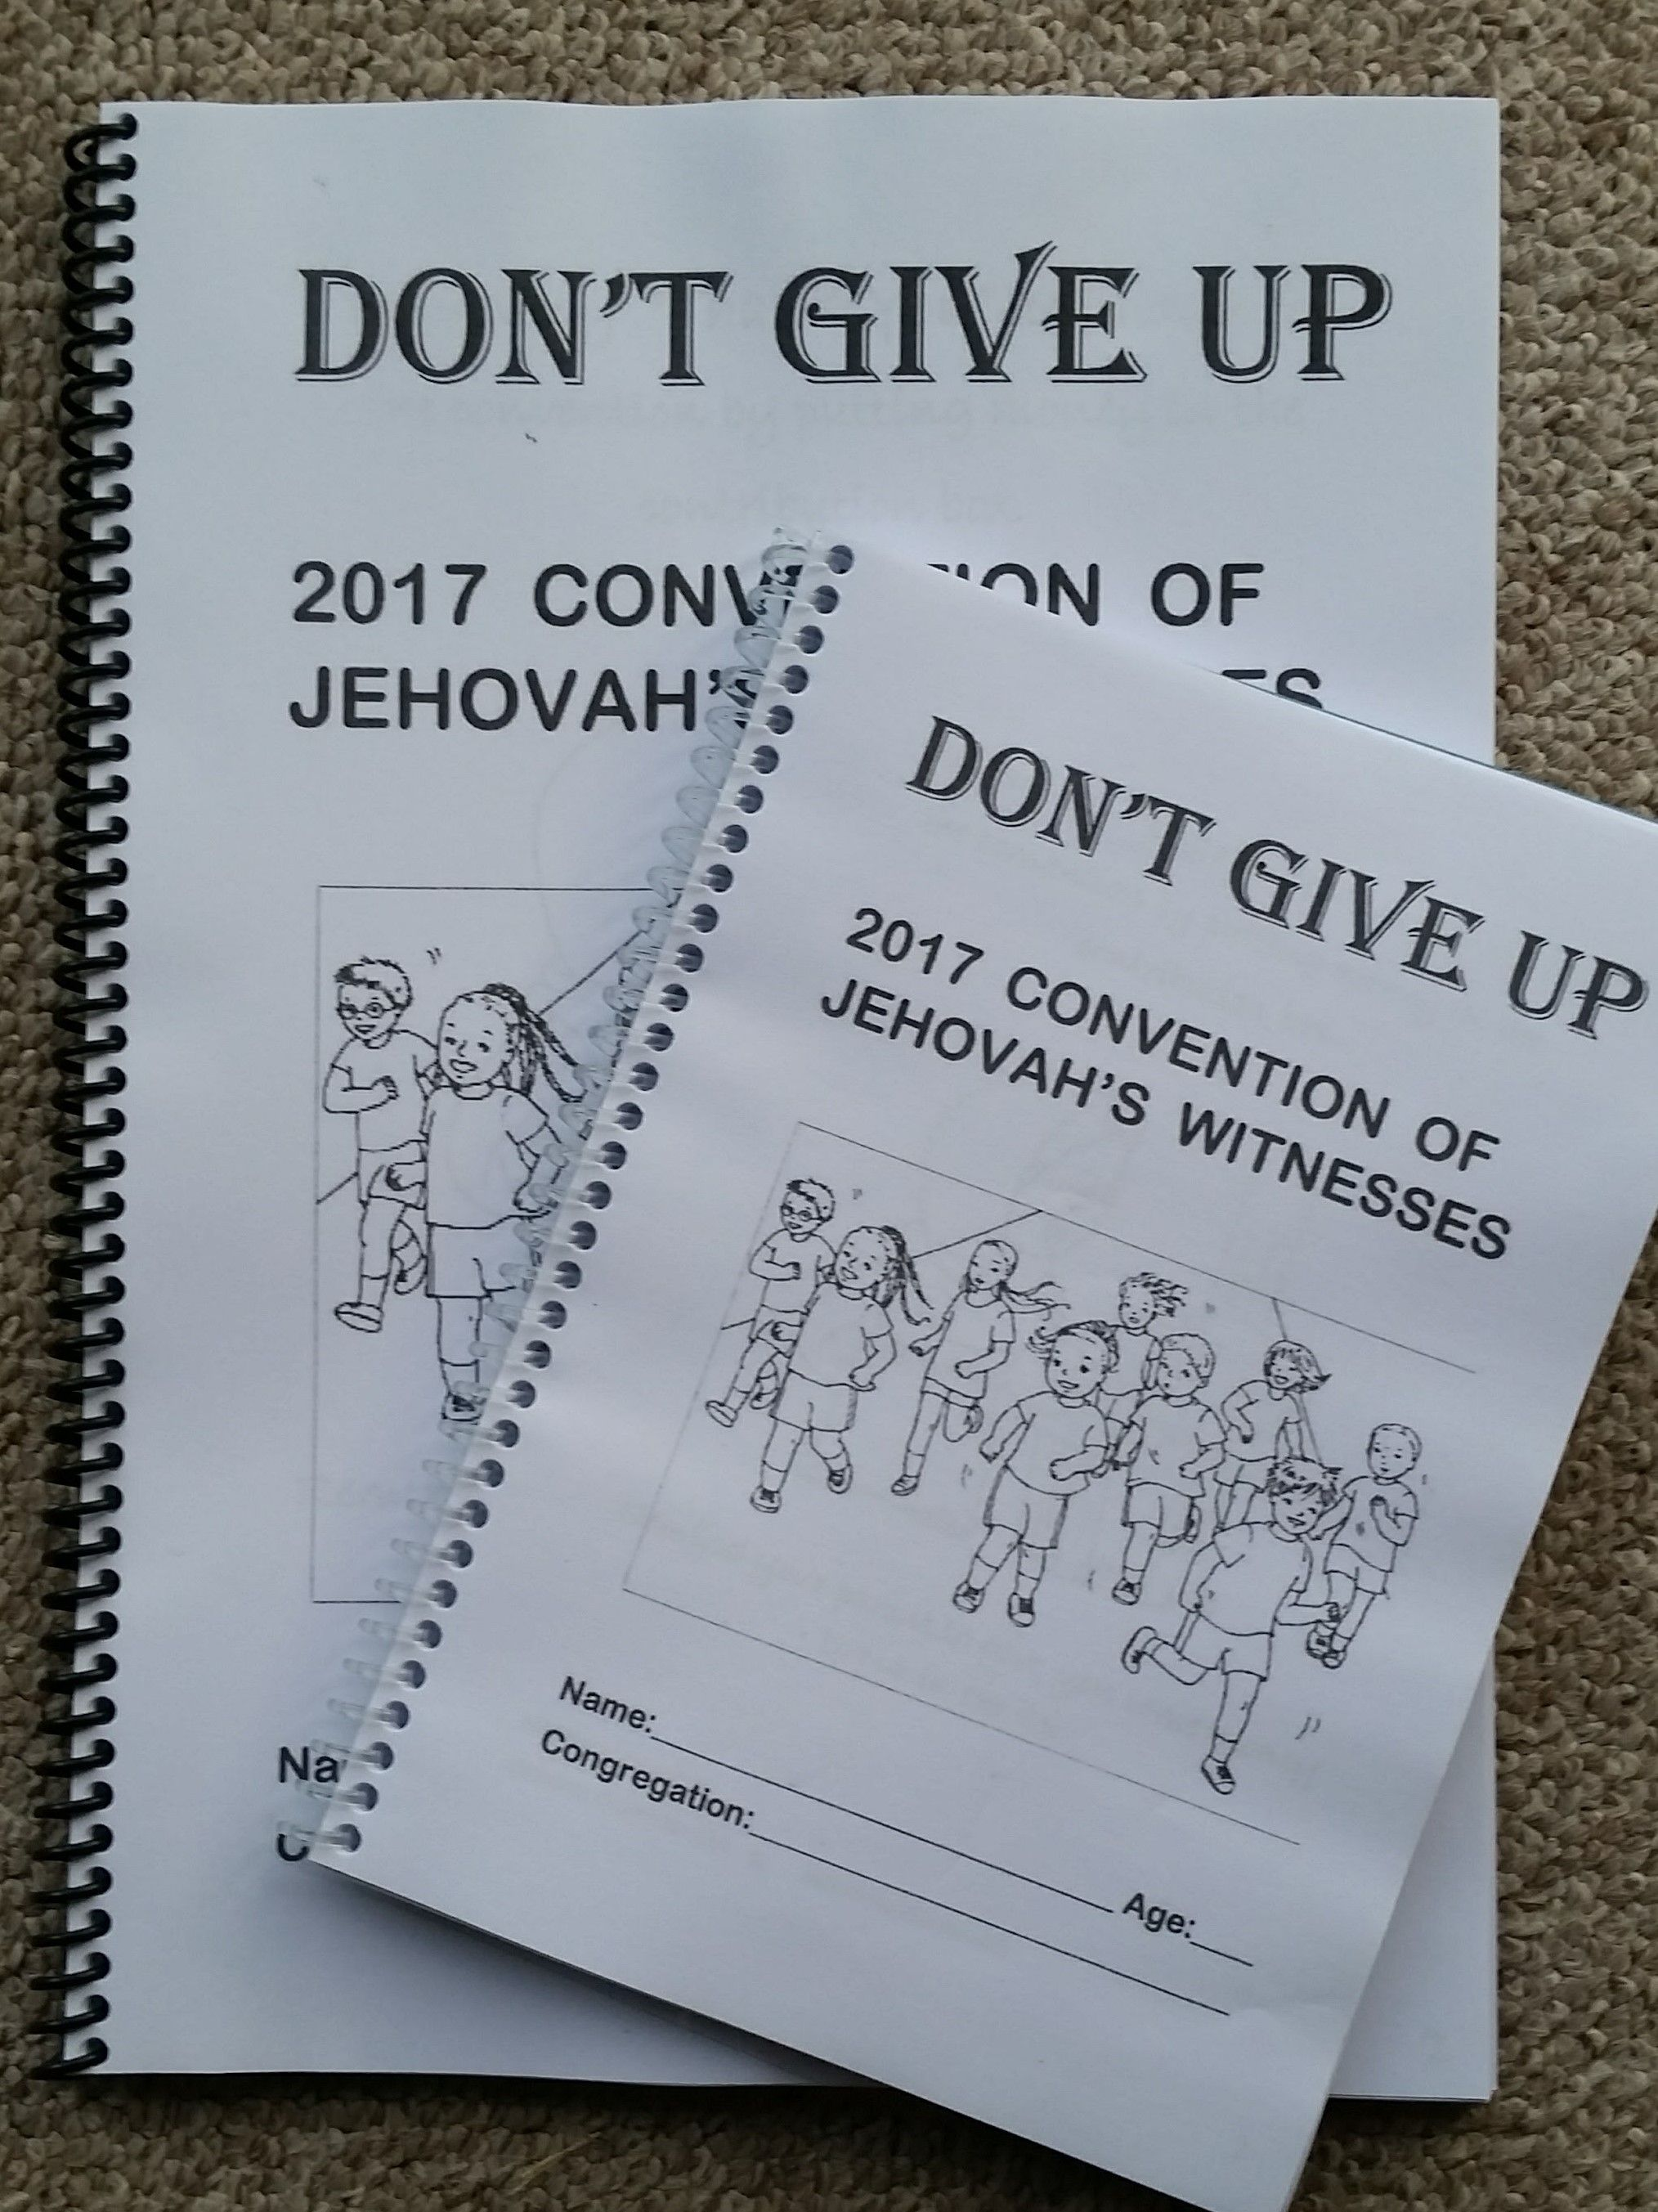 Karyndriscoll Webs 6 Jw Regional Convention Don T Give Up Notebook Etsy Conventionkids